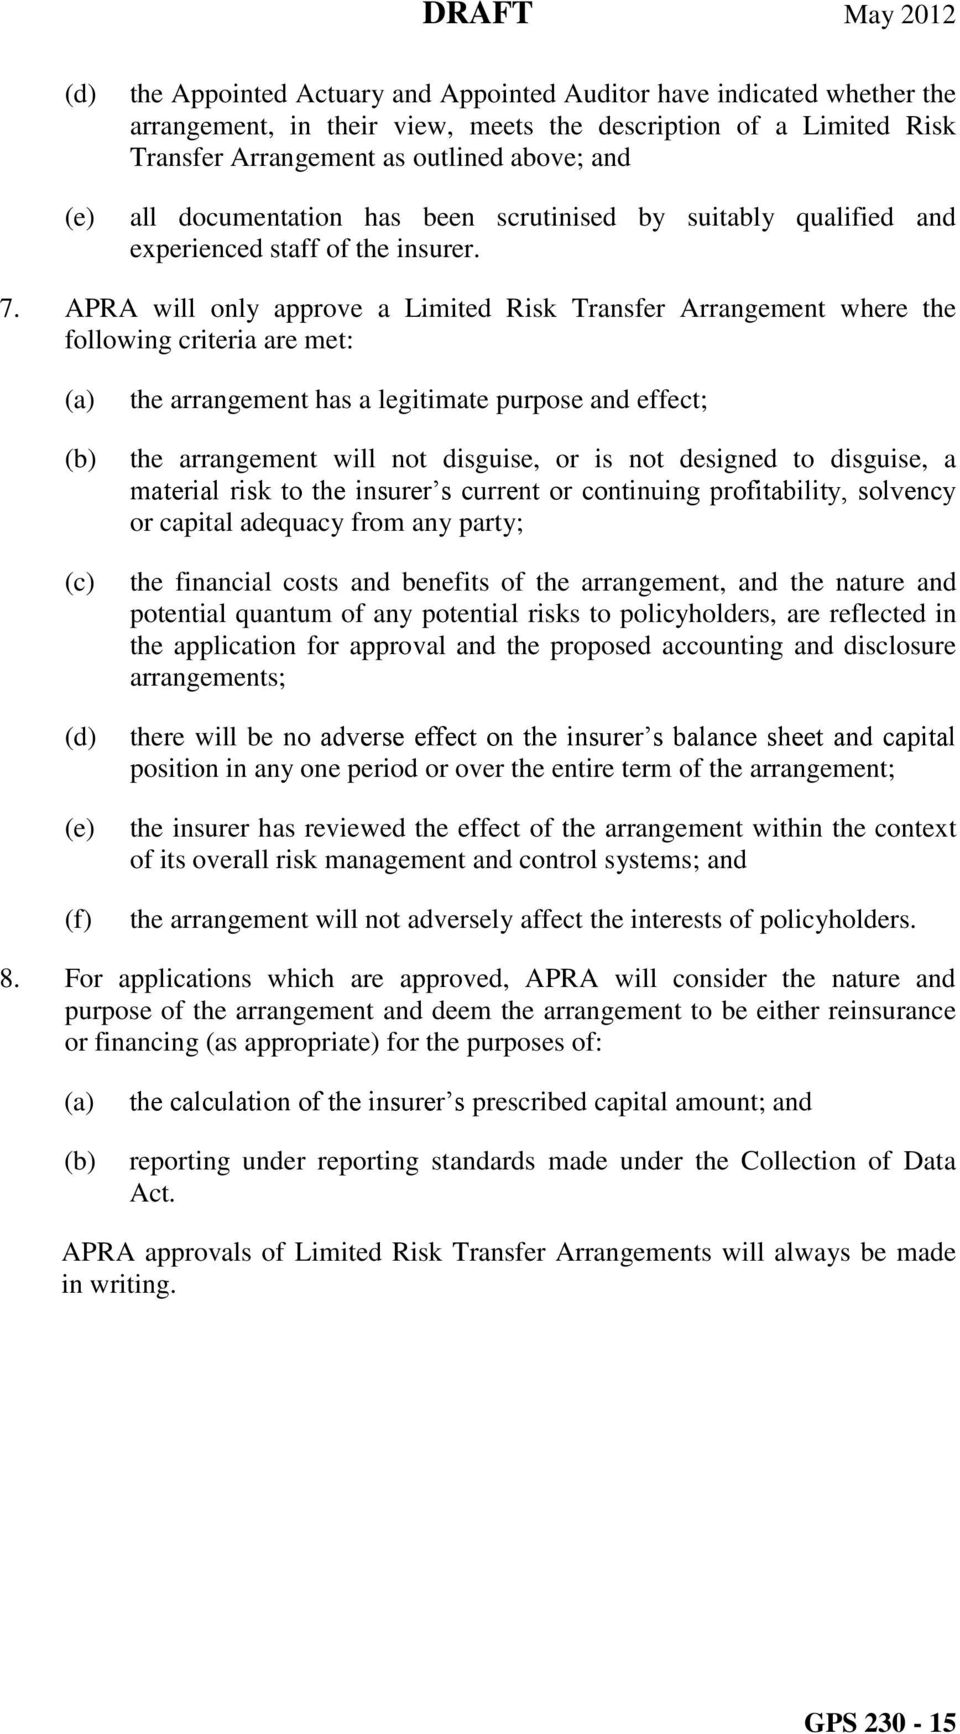 APRA will only approve a Limited Risk Transfer Arrangement where the following criteria are met: (c) (d) (e) (f) the arrangement has a legitimate purpose and effect; the arrangement will not